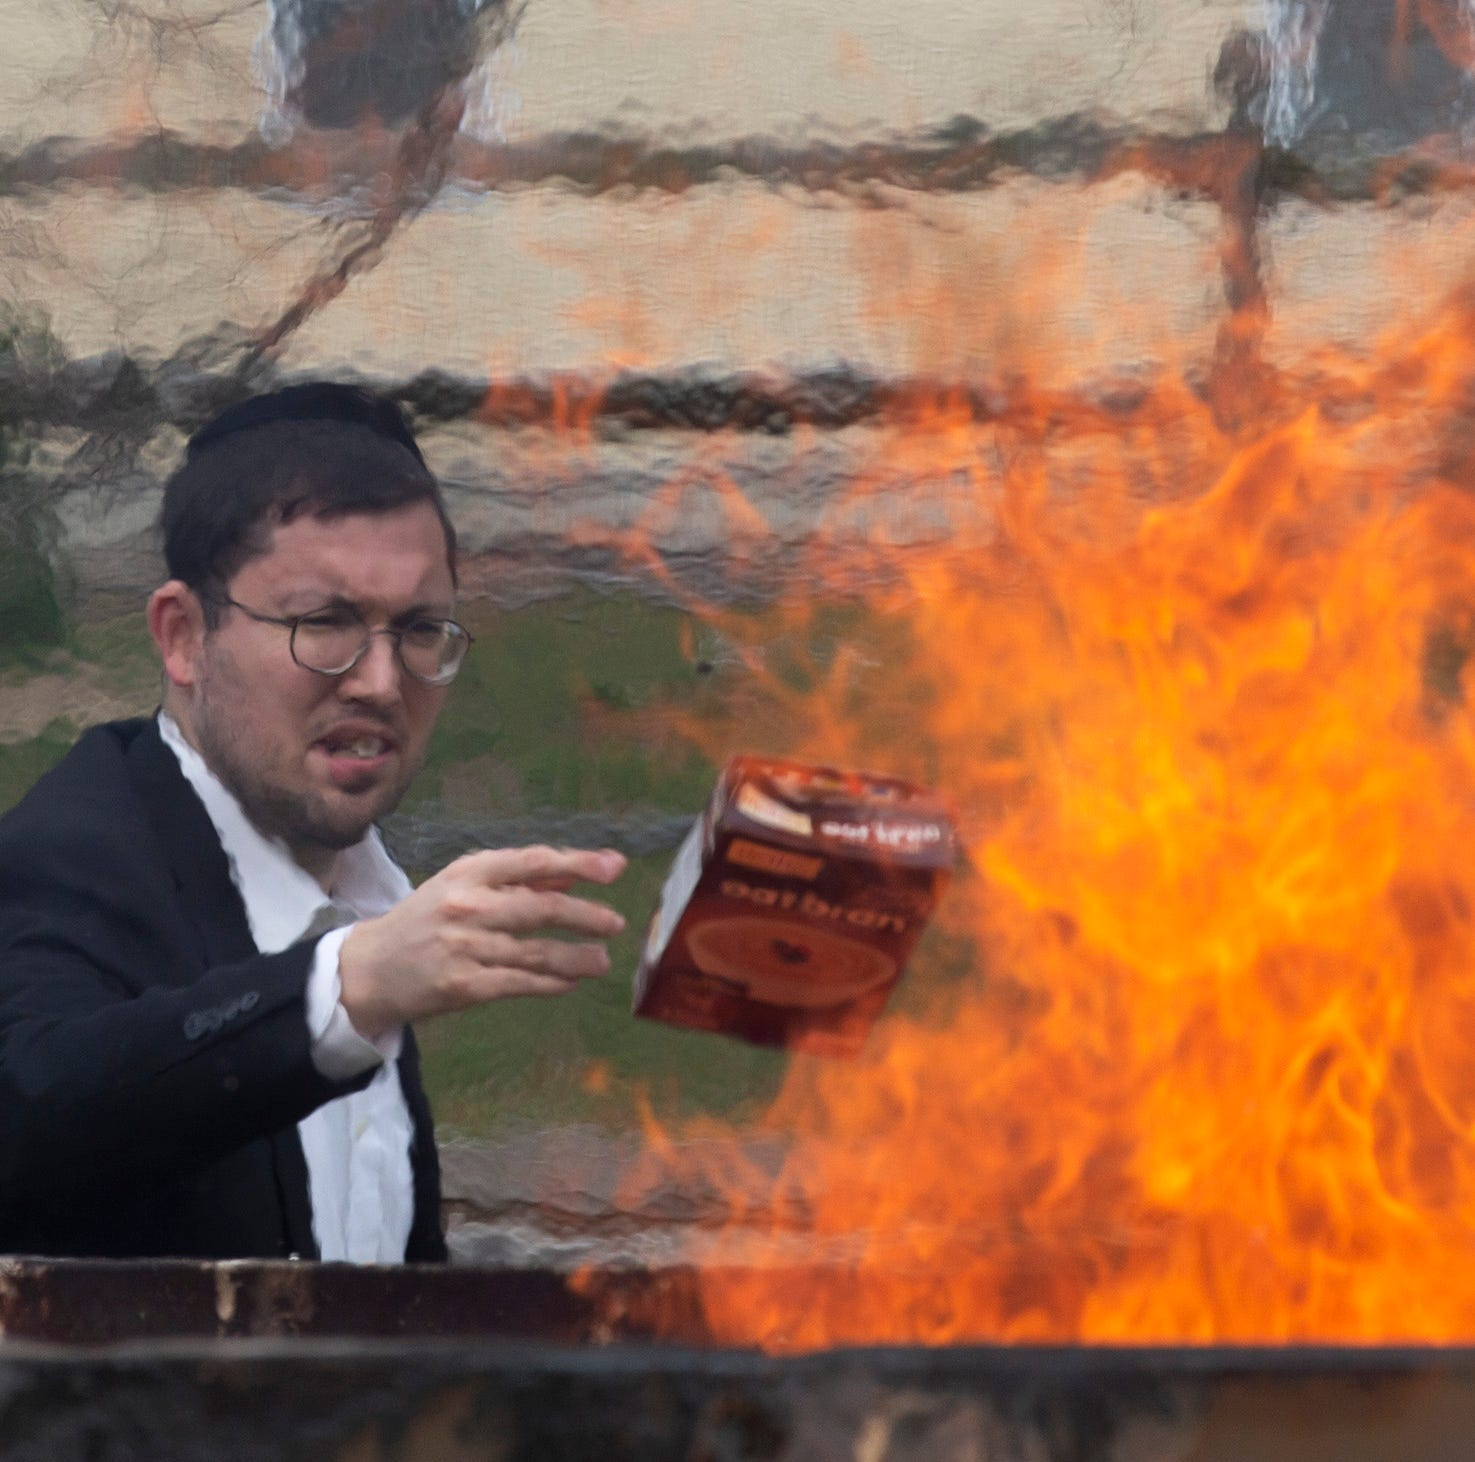 Lakewood: Bonfires to burn leavened bread signal start of Passover